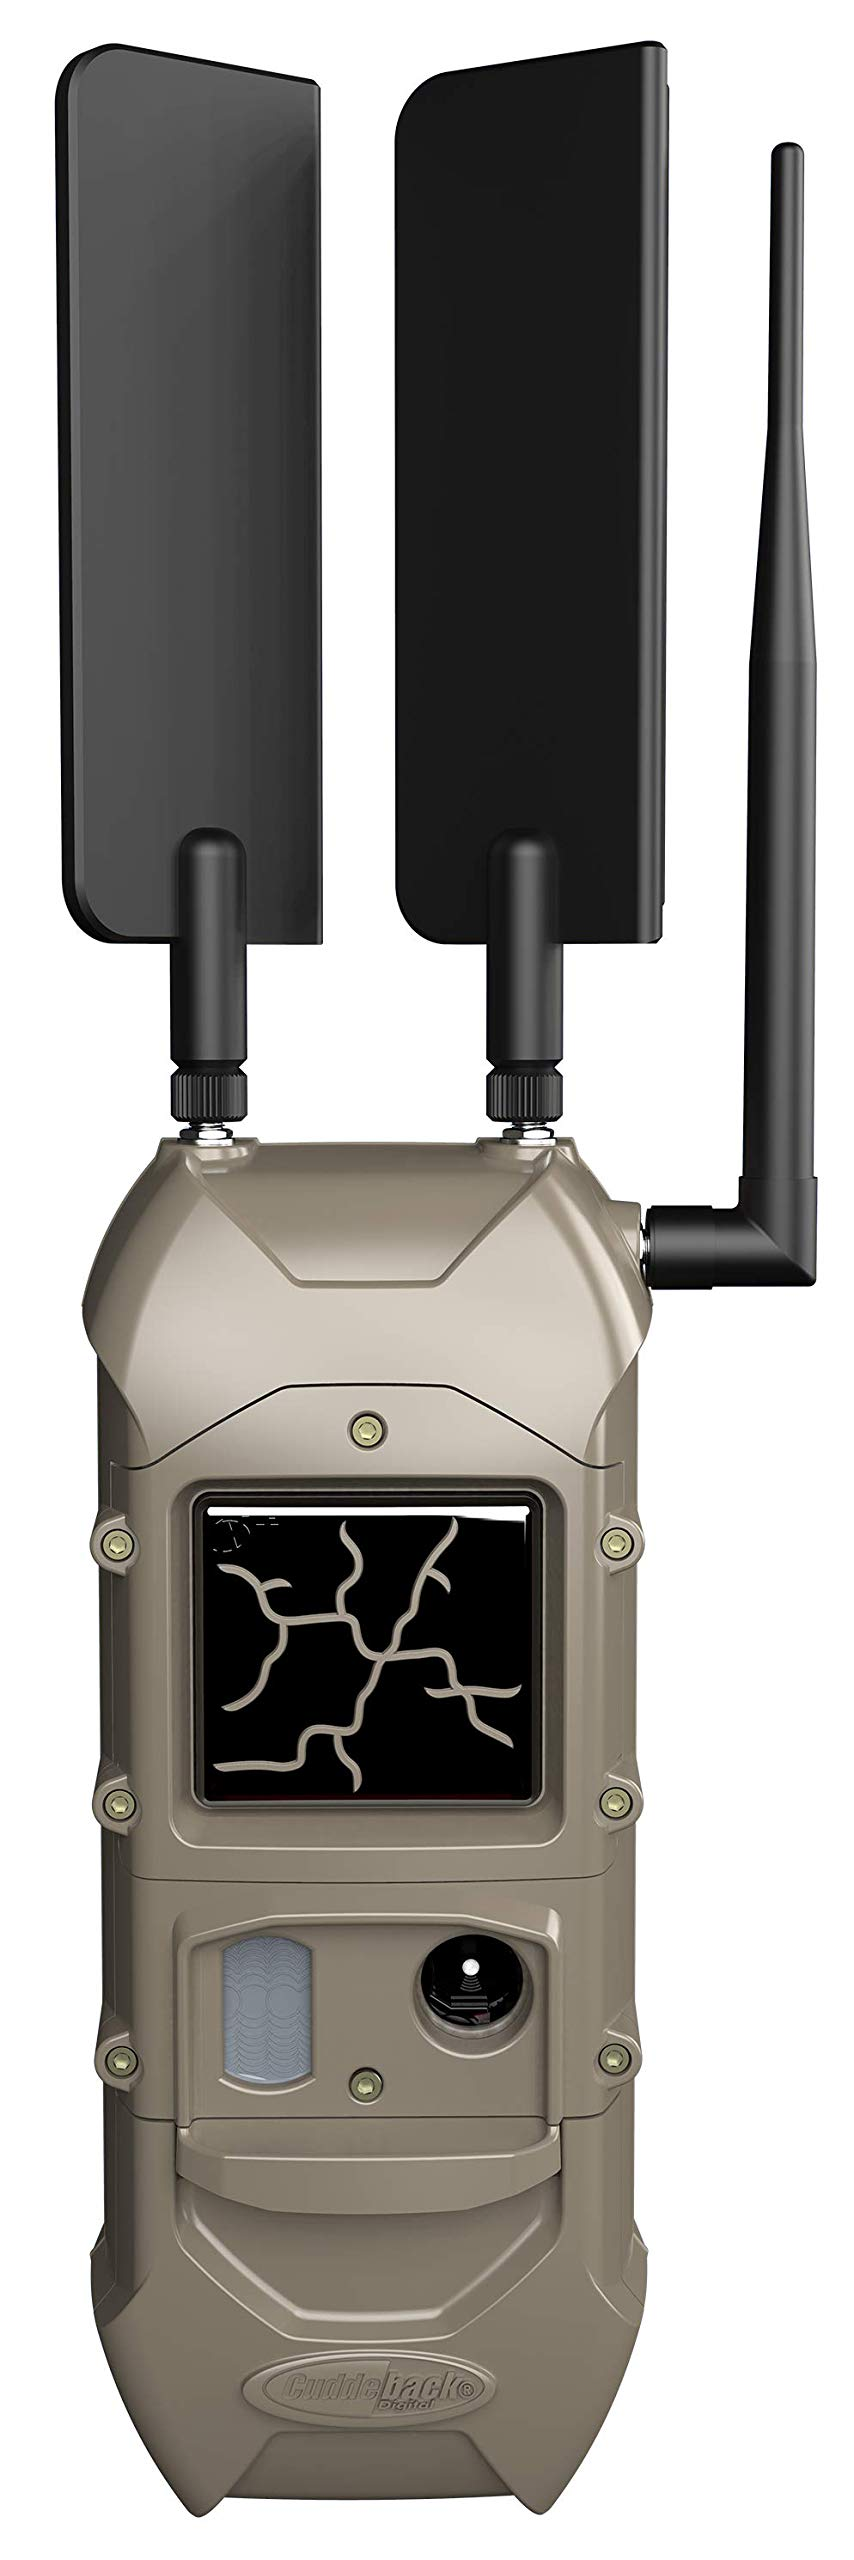 CuddeLink Dual Cell